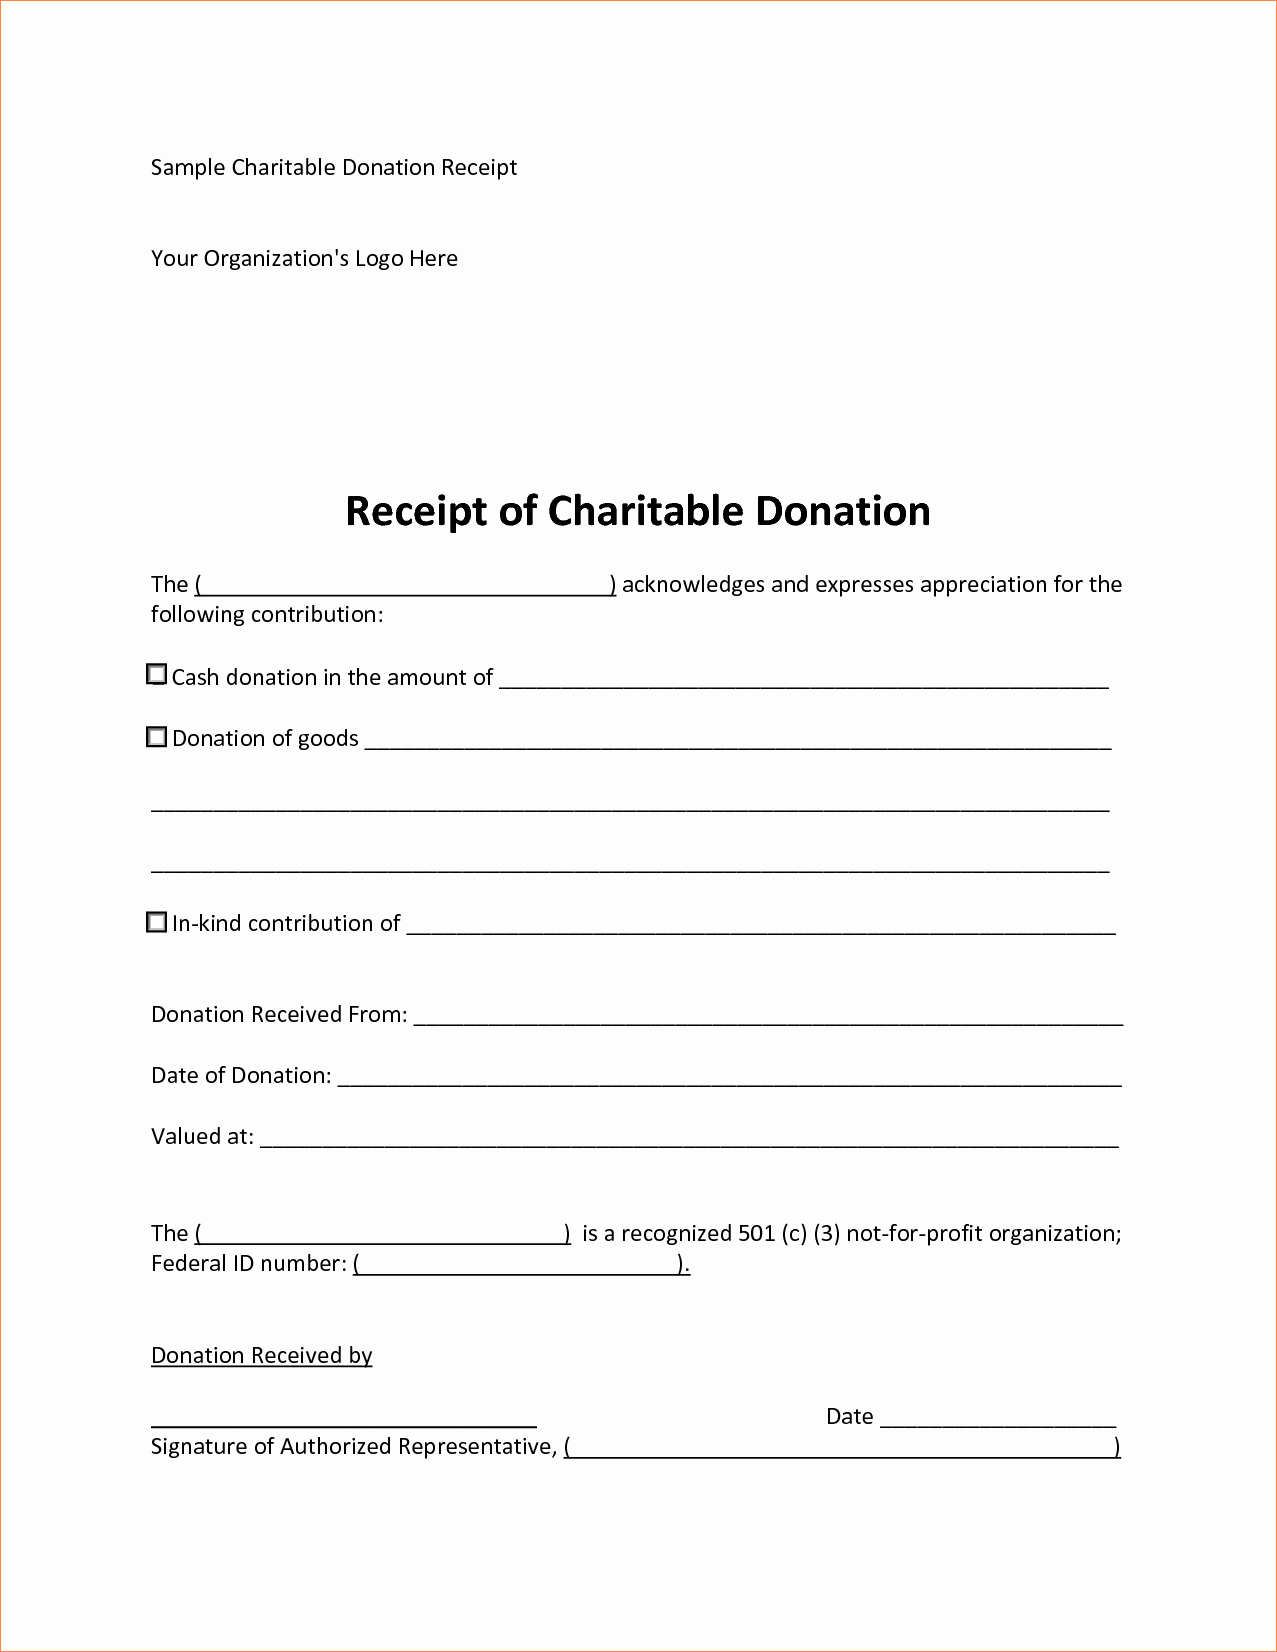 Nonprofit Donation Receipt Template Elegant 5 Sample Donation Receipt